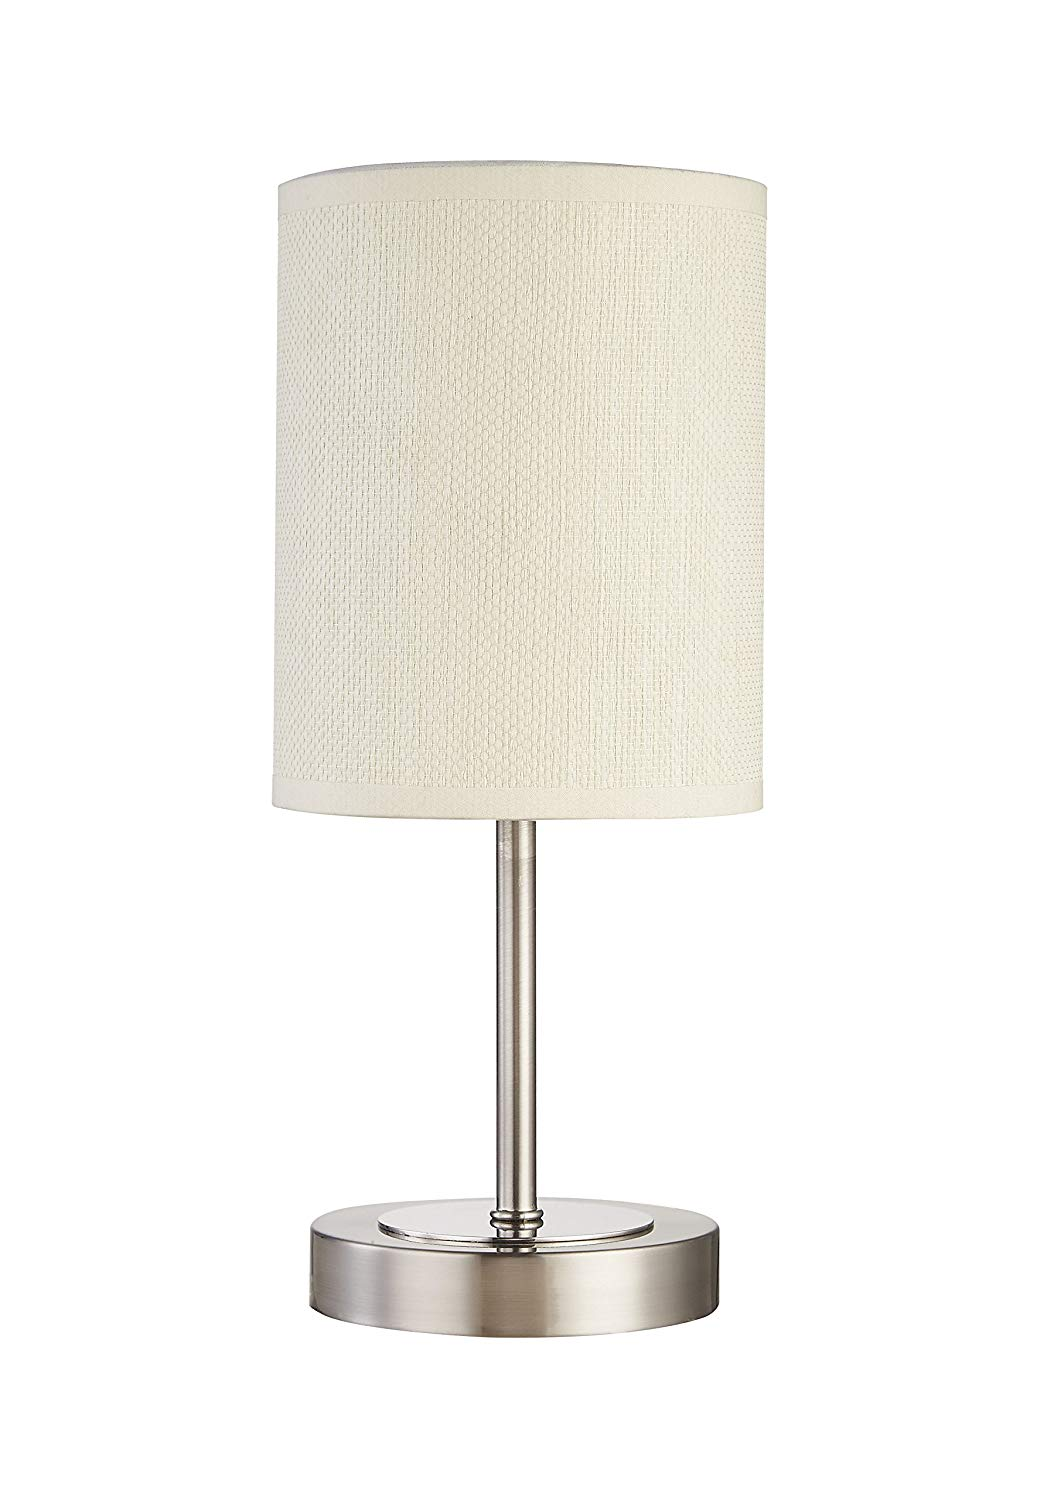 Table Lamp, DILI HOME Sand Nickel Mini Basic Table Lamp with Paper Fabric Shade and Stylish Metal Base Soft Light Lamps for Gifts, Office, Living Room.